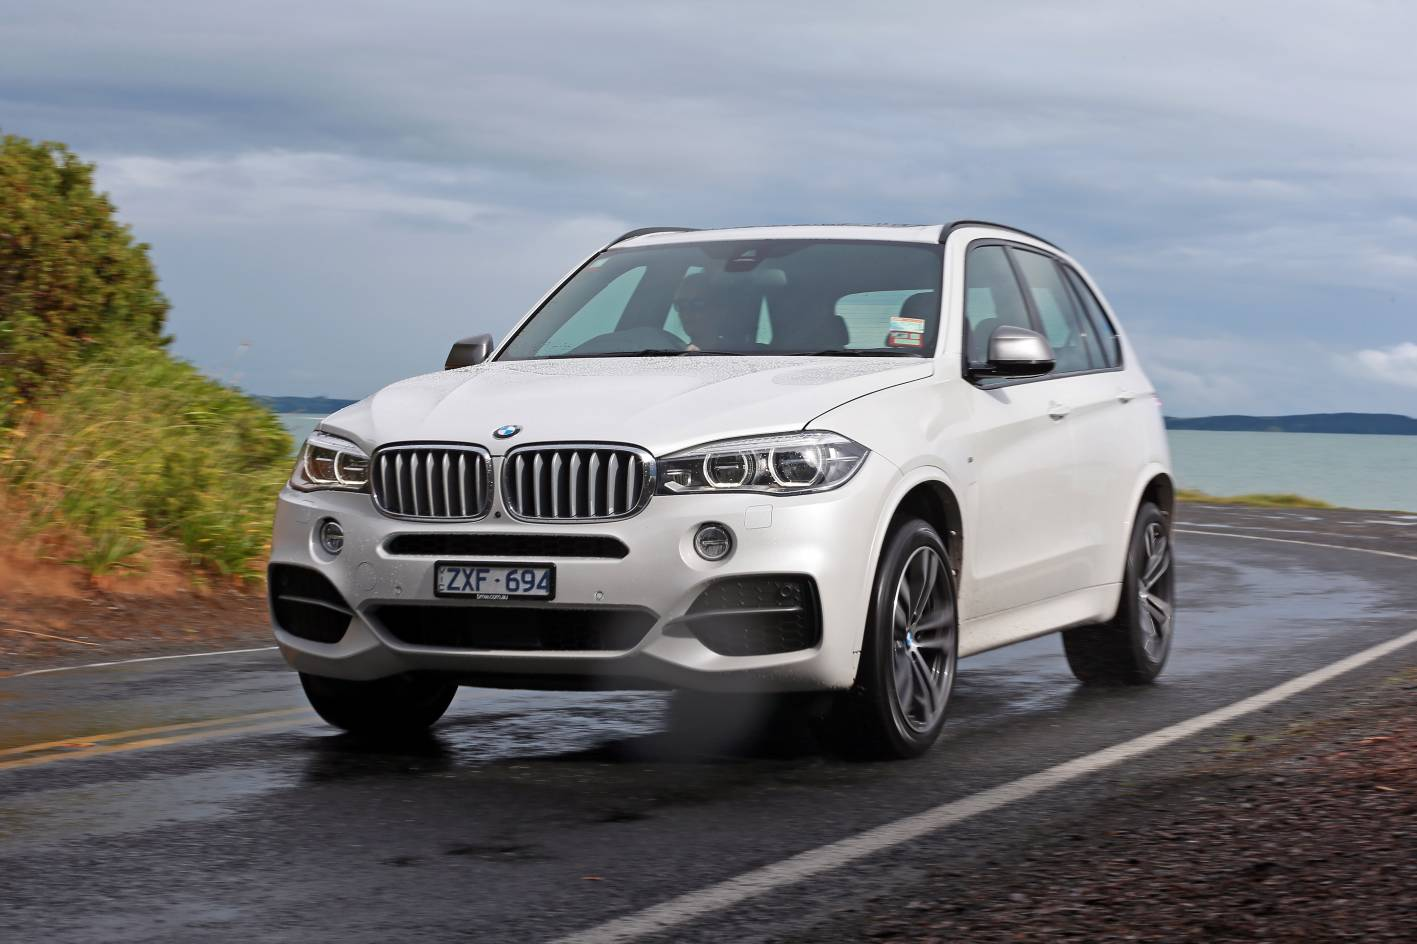 Bmw X5 Third Row >> Review - BMW X5 M50d Review and Road Test